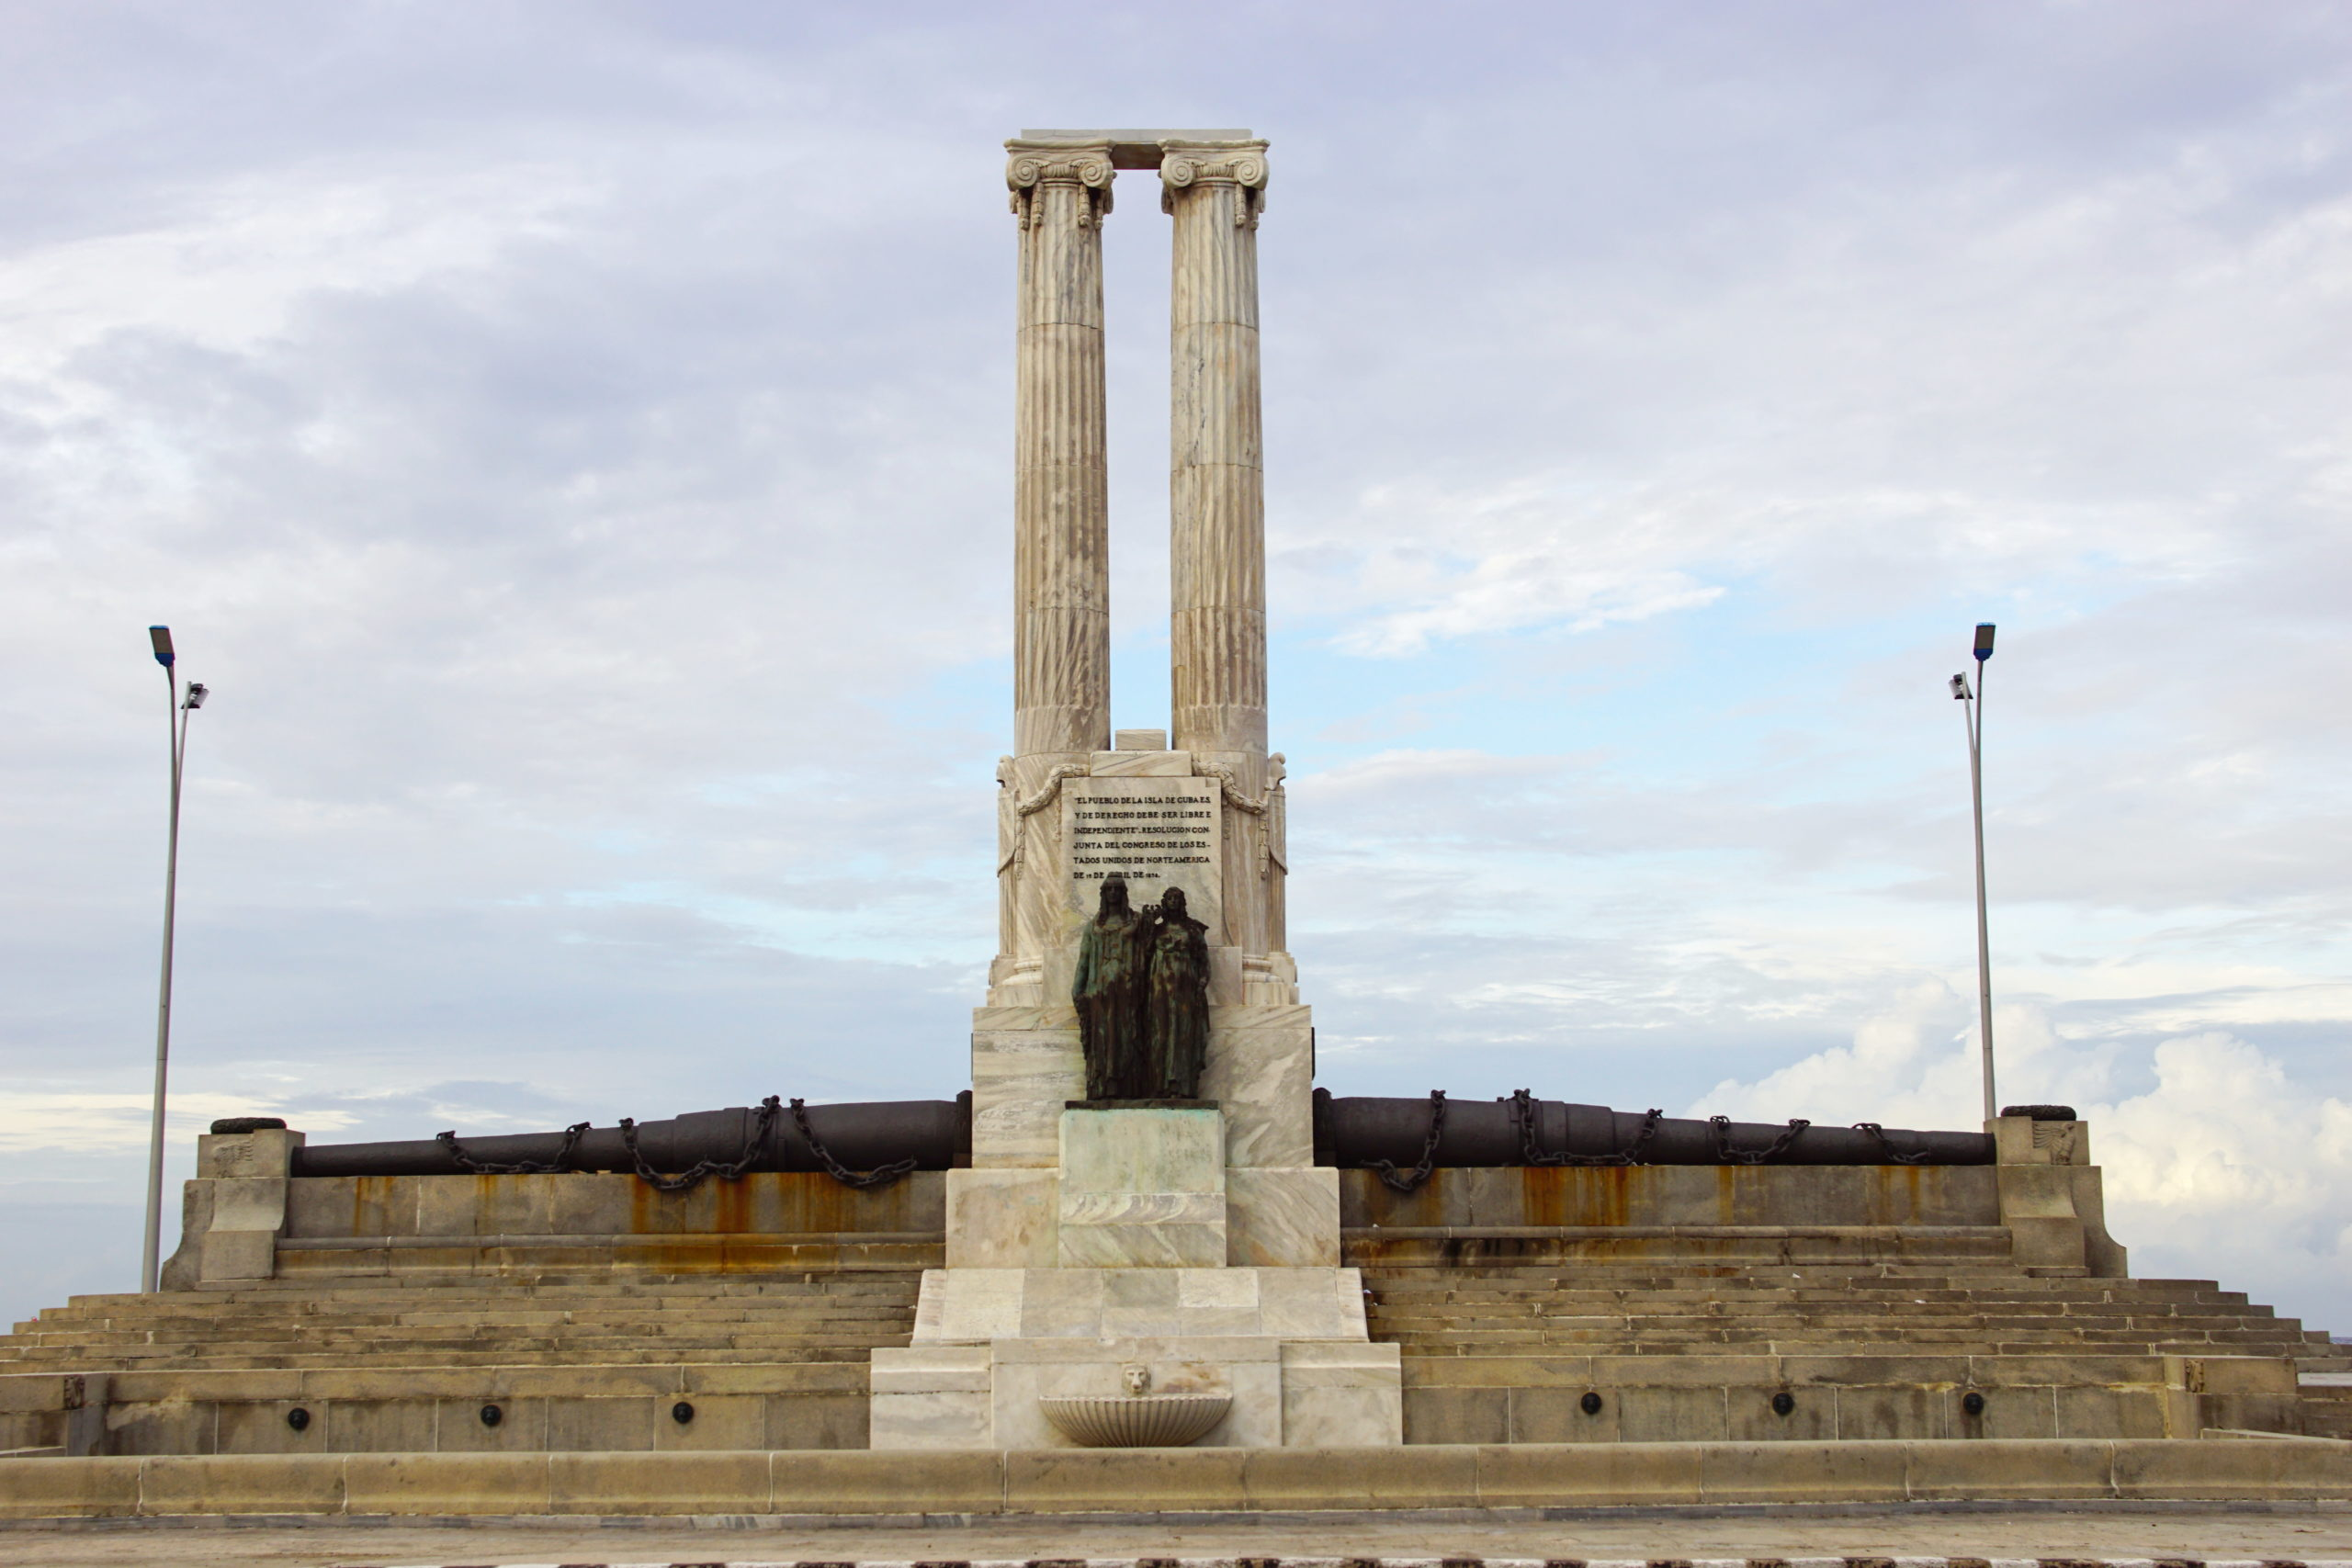 One of Cuba's stranger monuments.